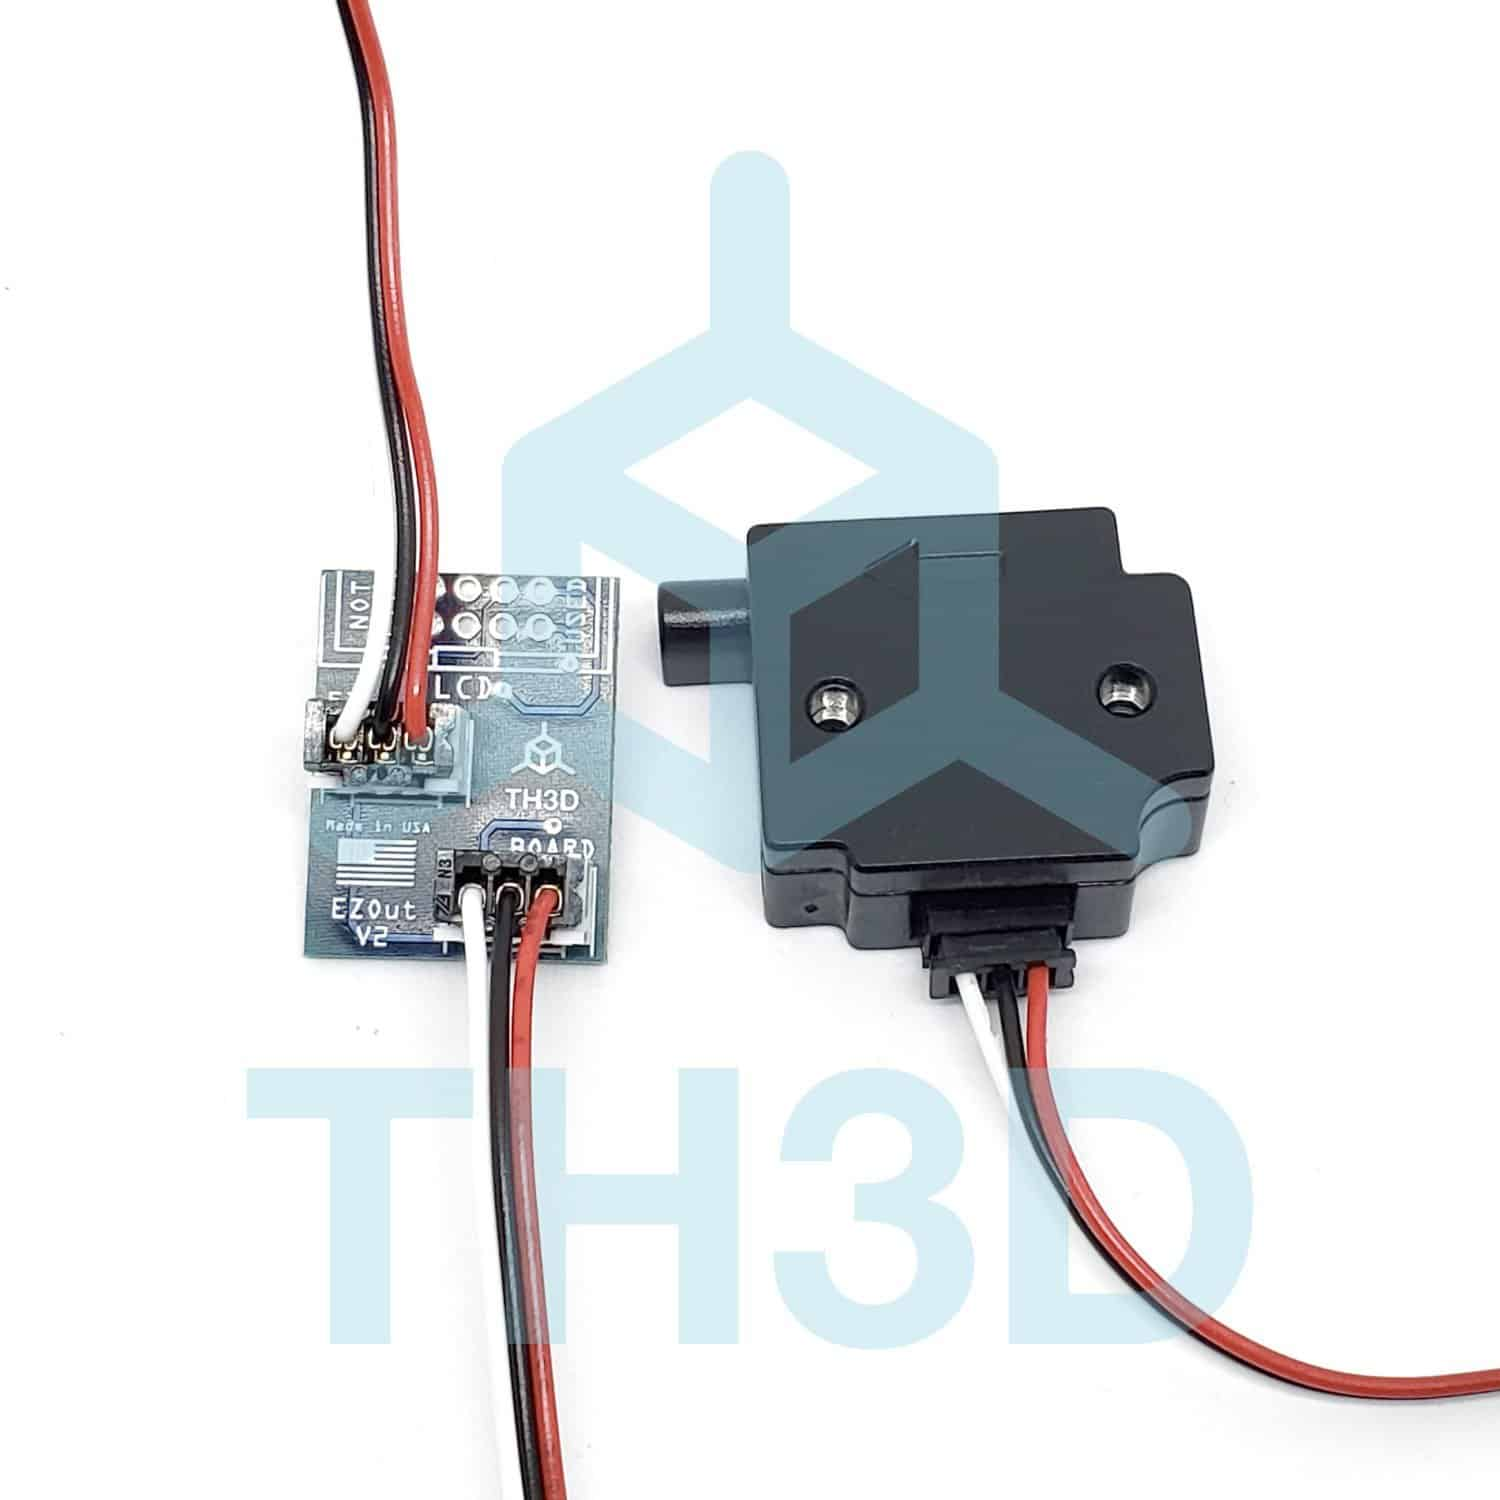 EZOut V2 - Filament Sensor Kit or BL Touch Adapter Board - TH3D Studio LLC